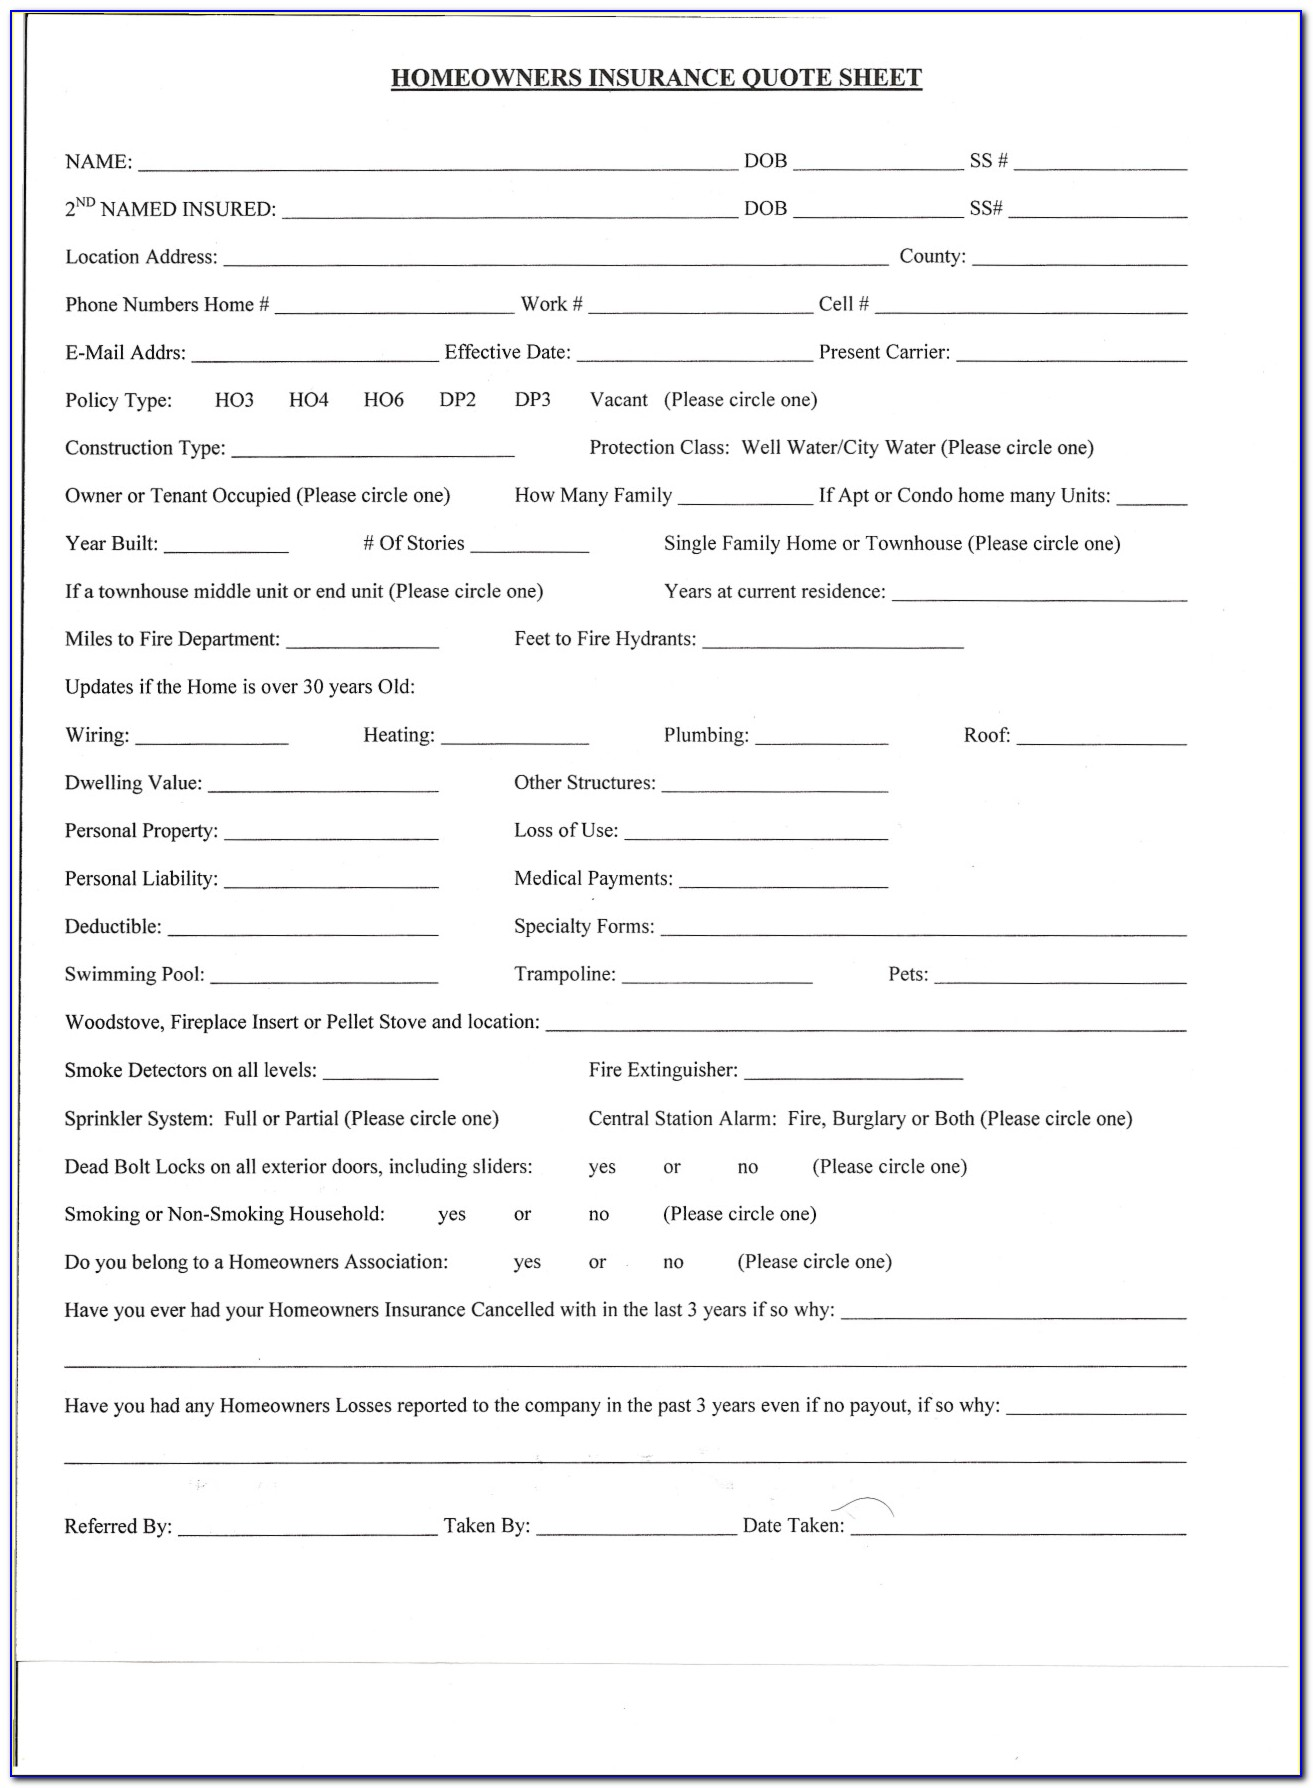 Car Insurance Quote Form Template Vincegray2014